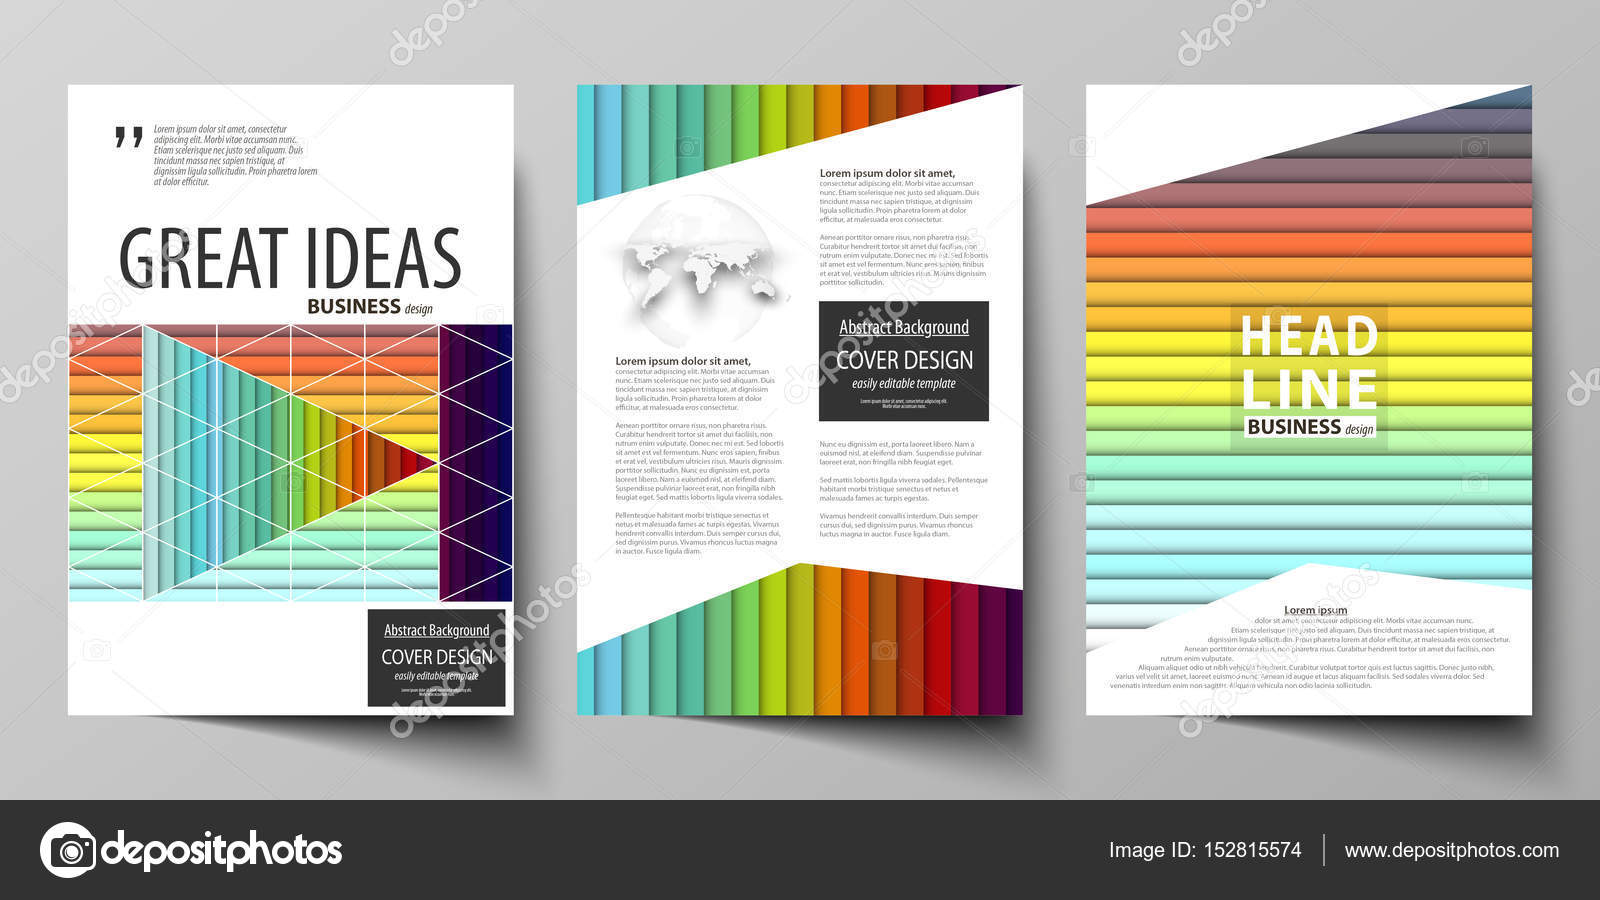 Business templates for brochure, magazine, flyer, annual report